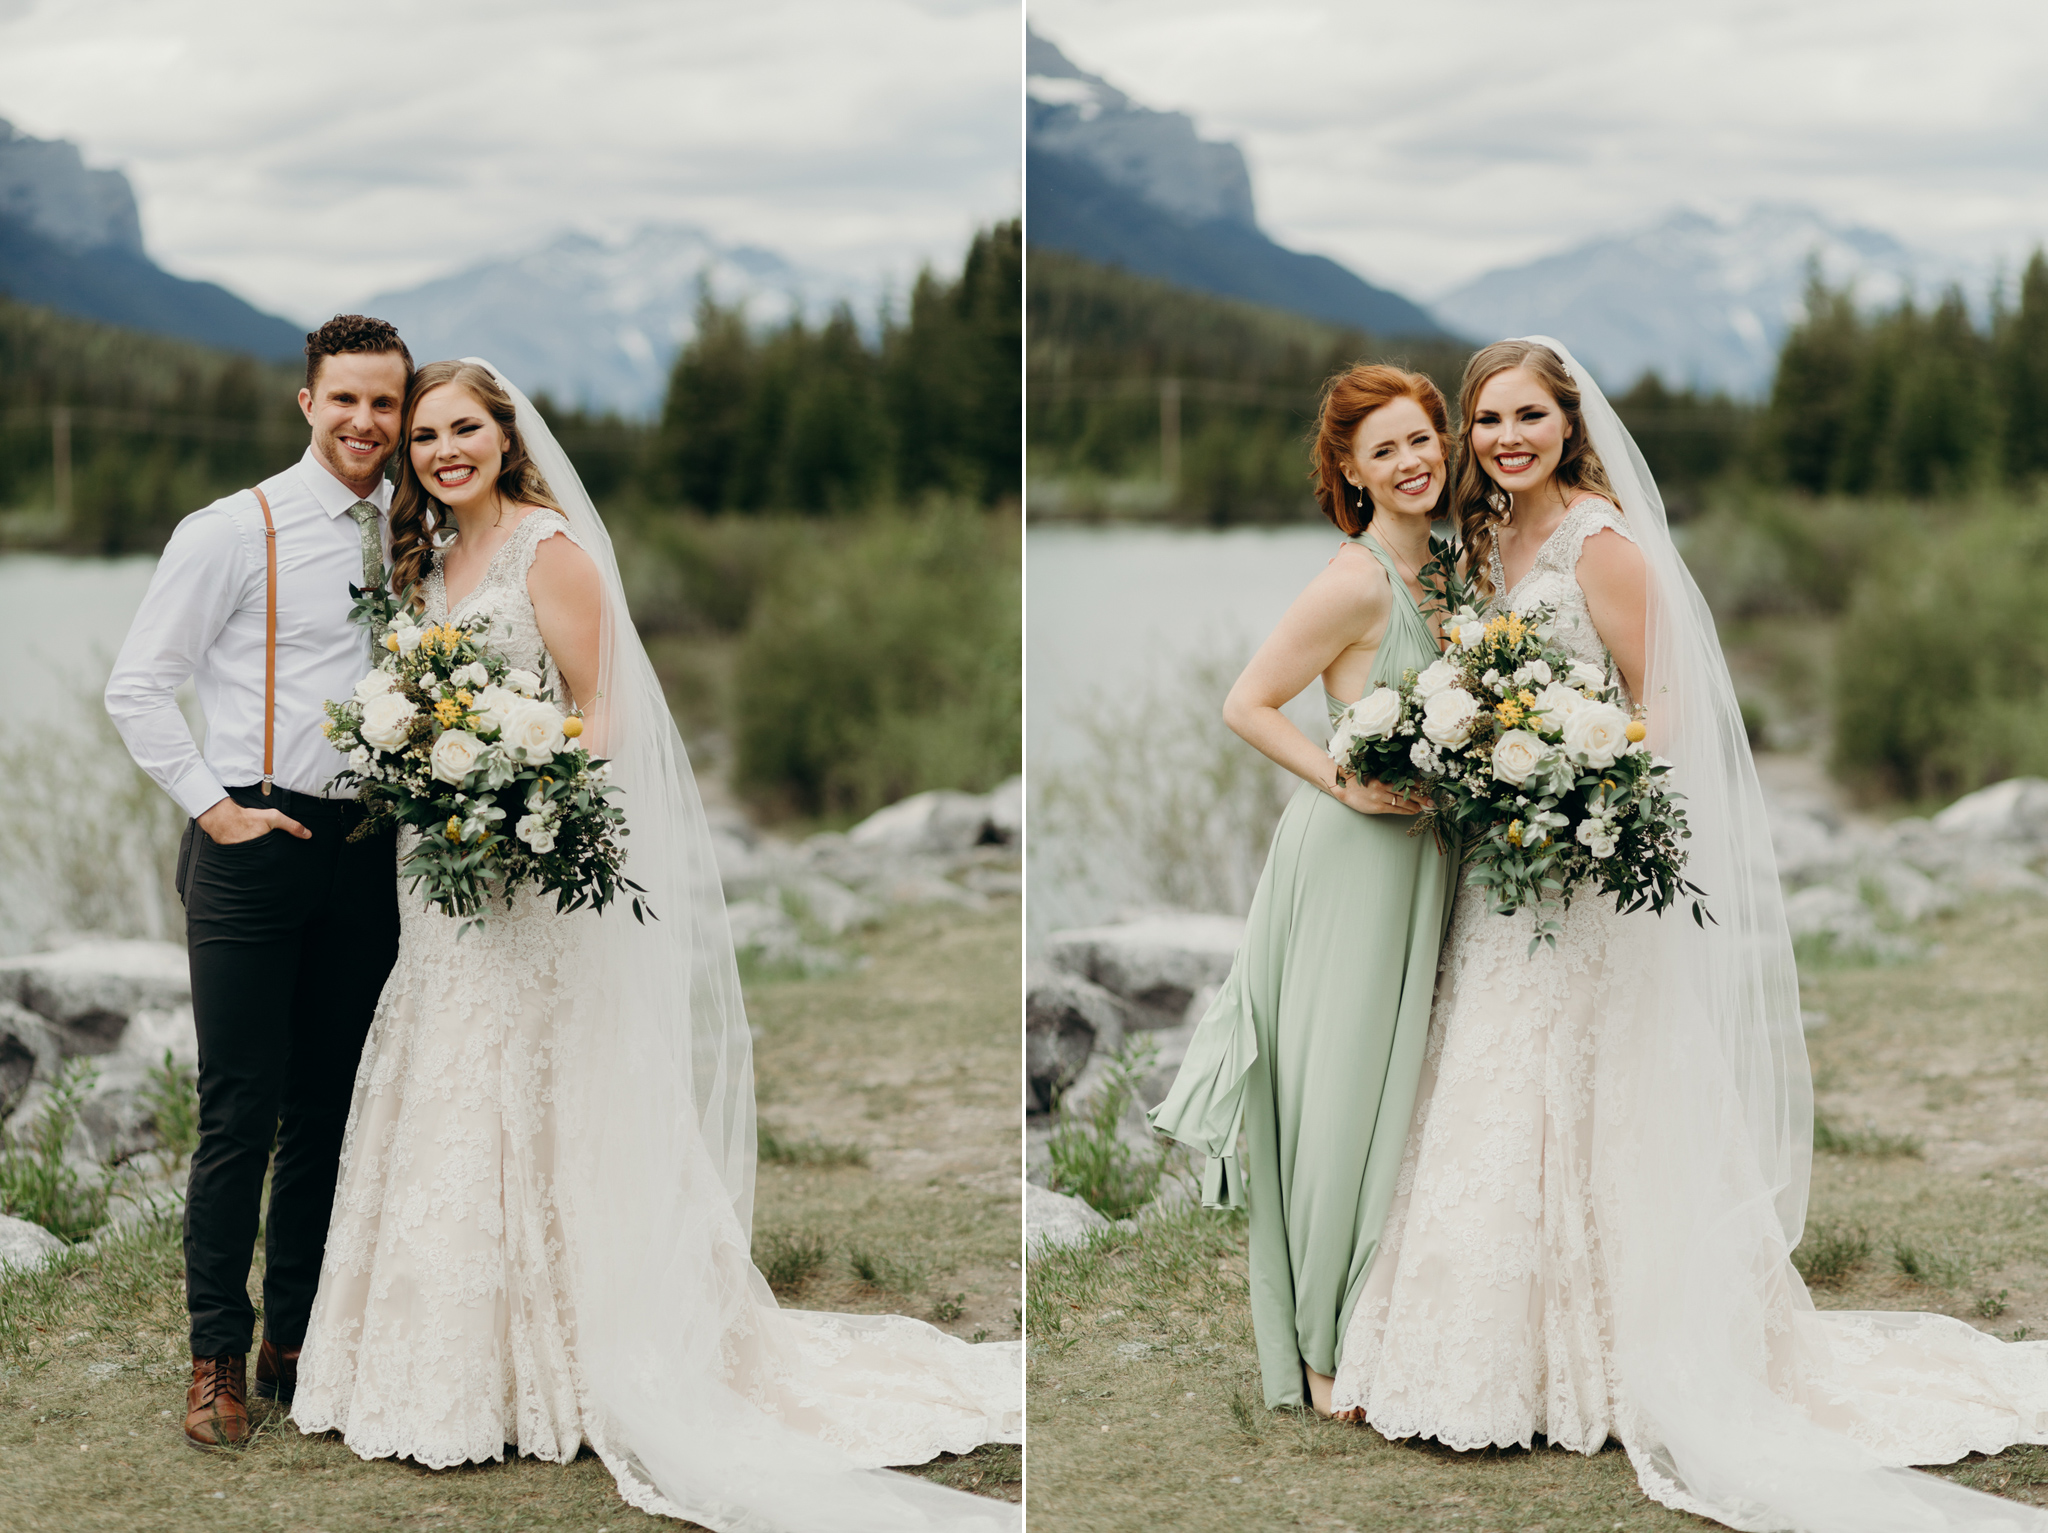 Bride and bridesmaid pose by Bow River Canmore AB smiling destination wedding photographer MN